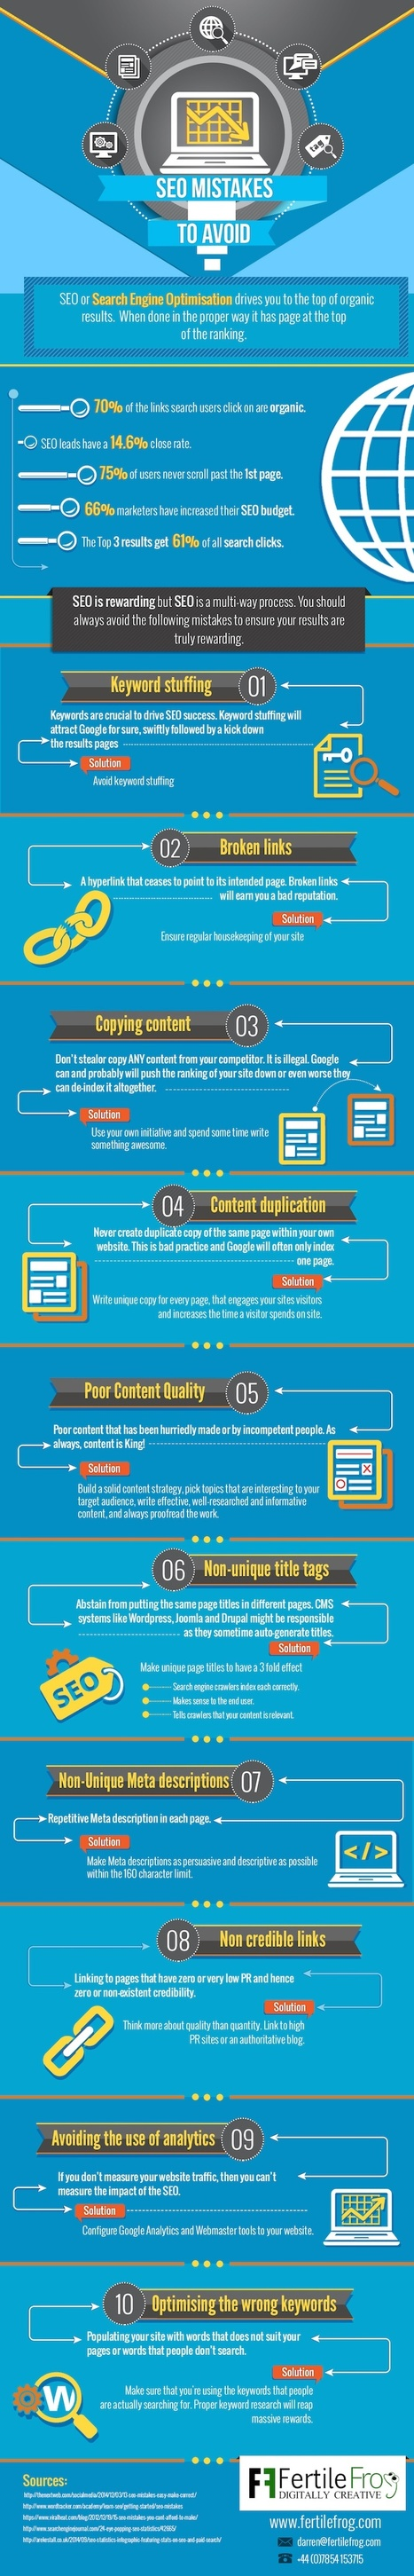 Want to Rank Better in Search? Avoid These 10 SEO Mistakes [Infographic] | SEO and Social Media Marketing | Scoop.it